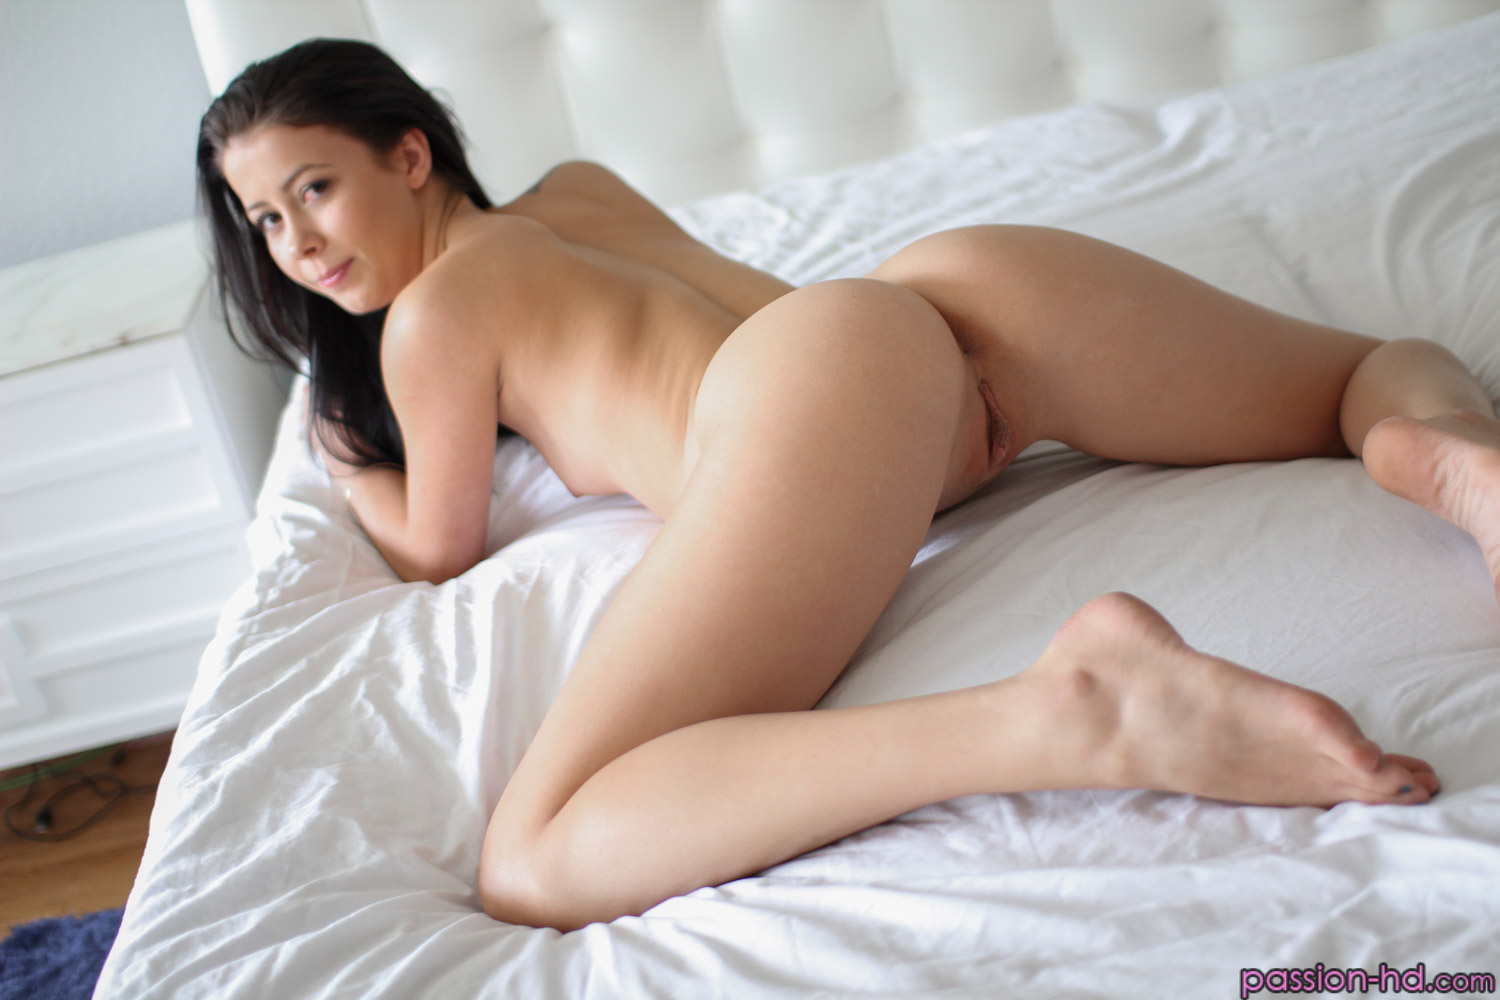 healty and very fertile creampie shoot for dark haired alaina from passion-hd #1